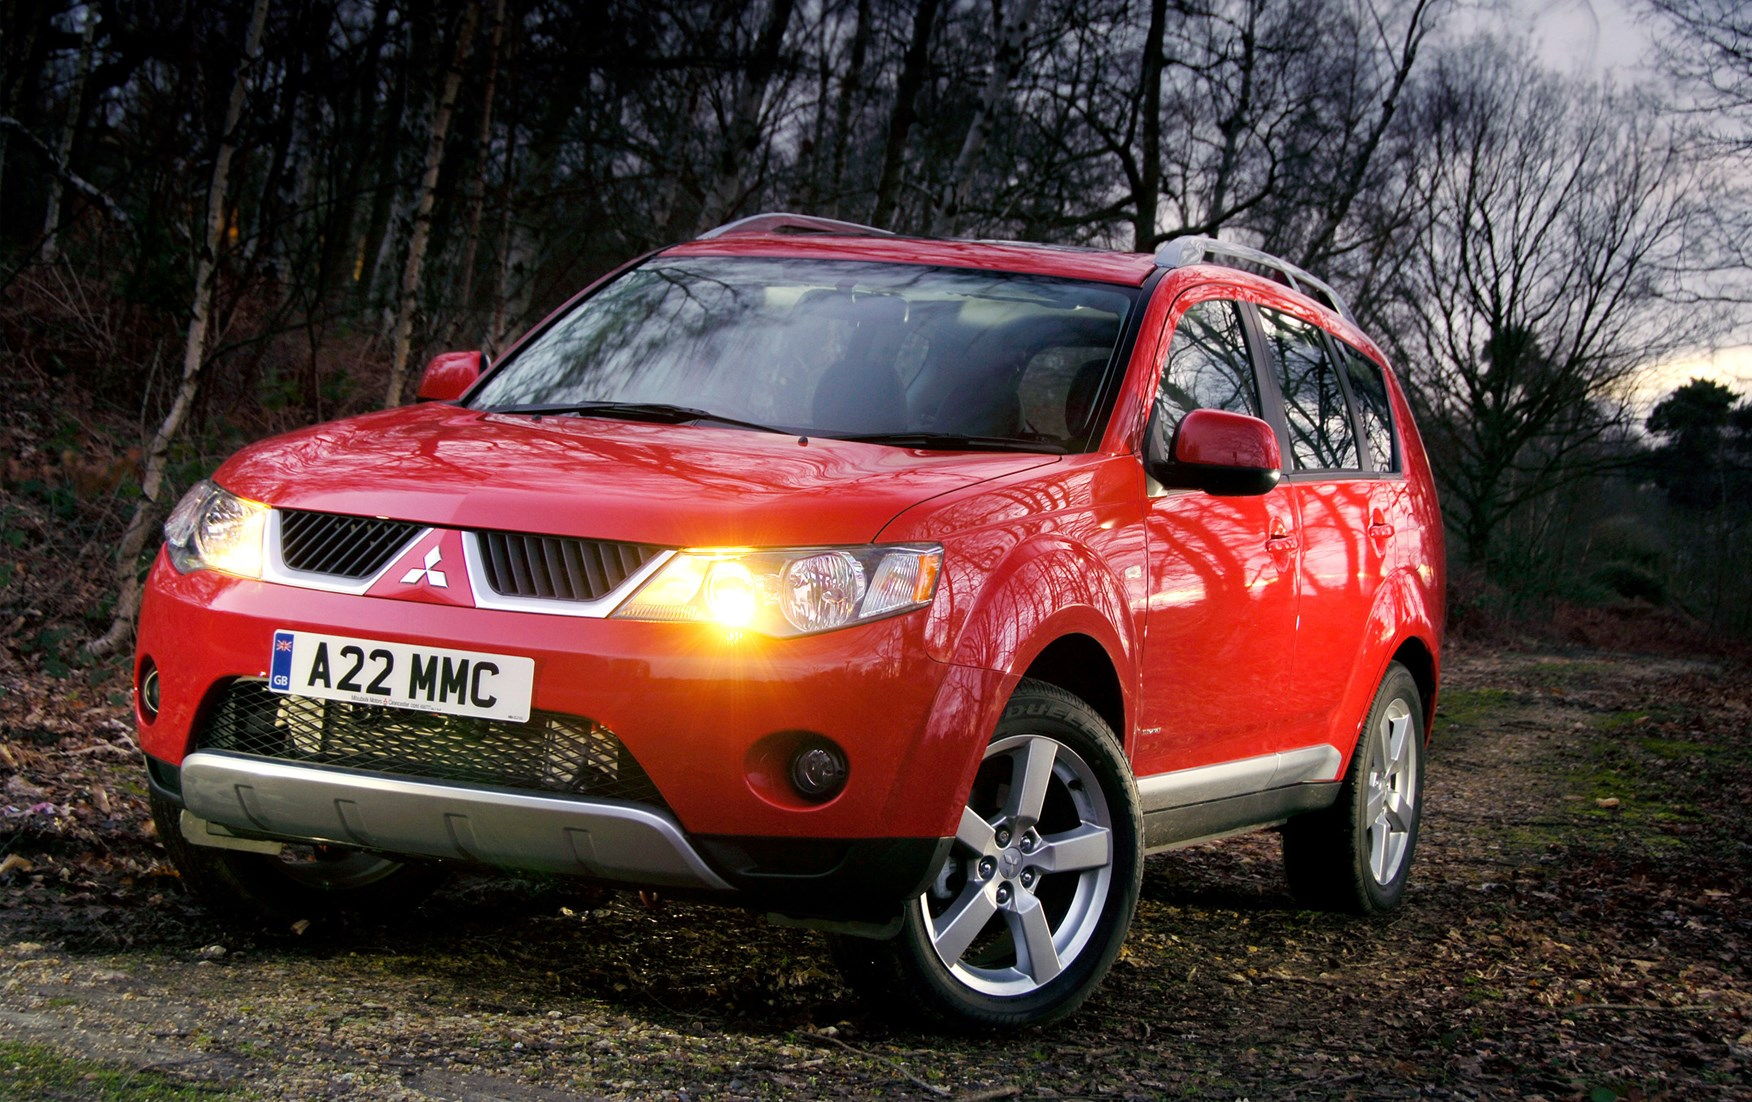 Used Mitsubishi Outlander Estate (2007 - 2013) Review | Parkers